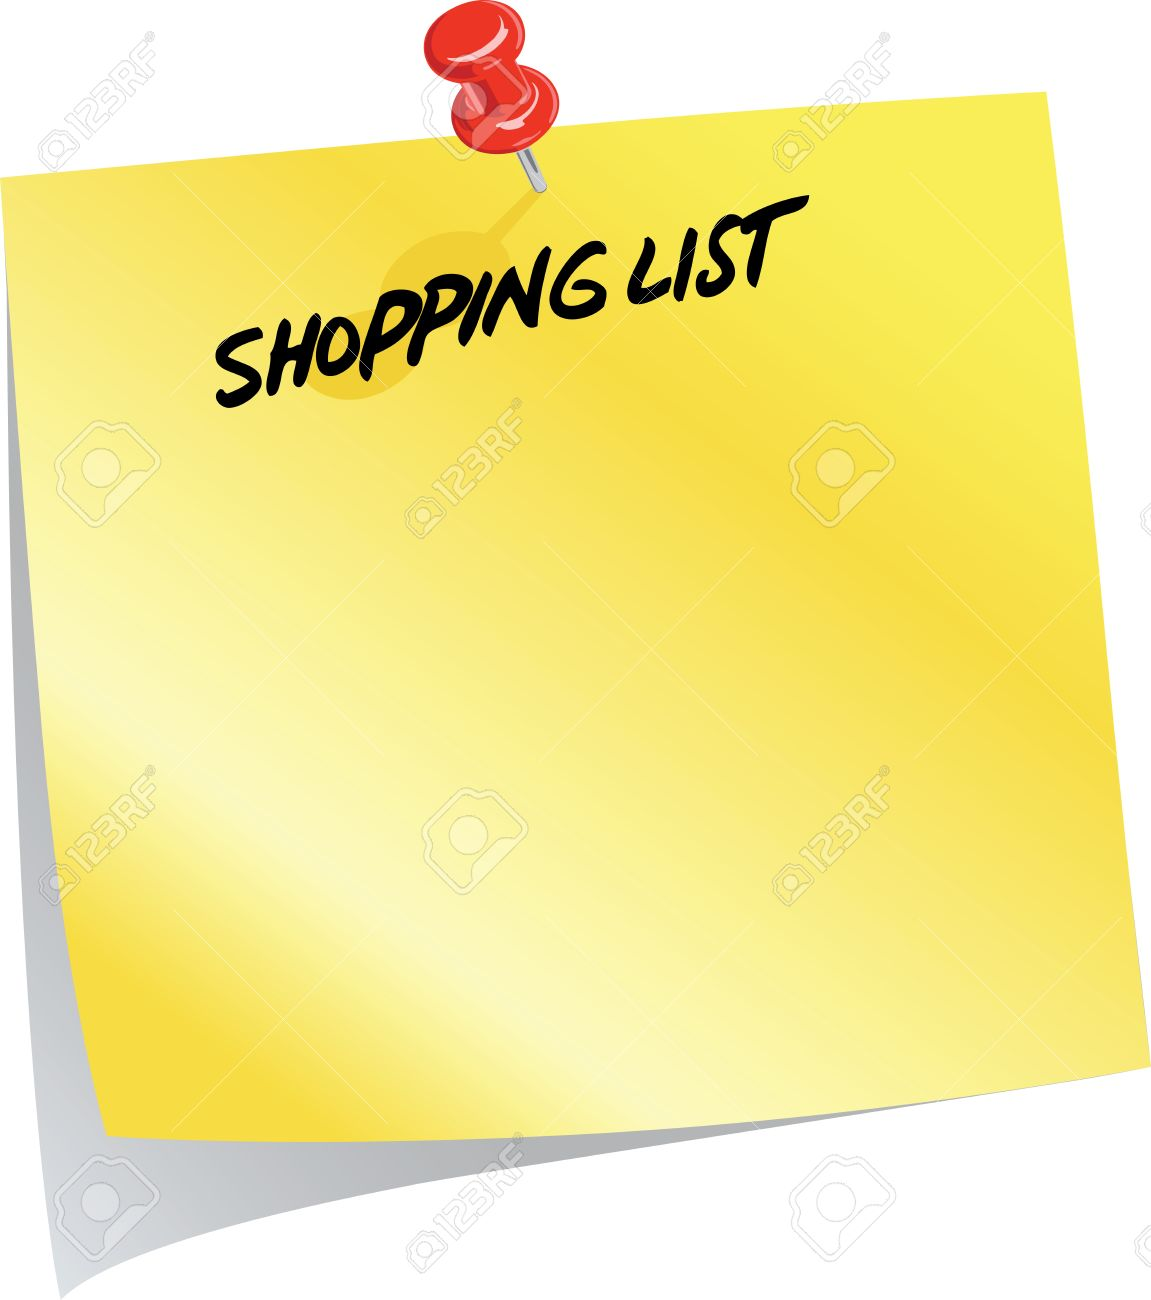 Clipart grocery list image stock Clipart grocery list - ClipartFest image stock